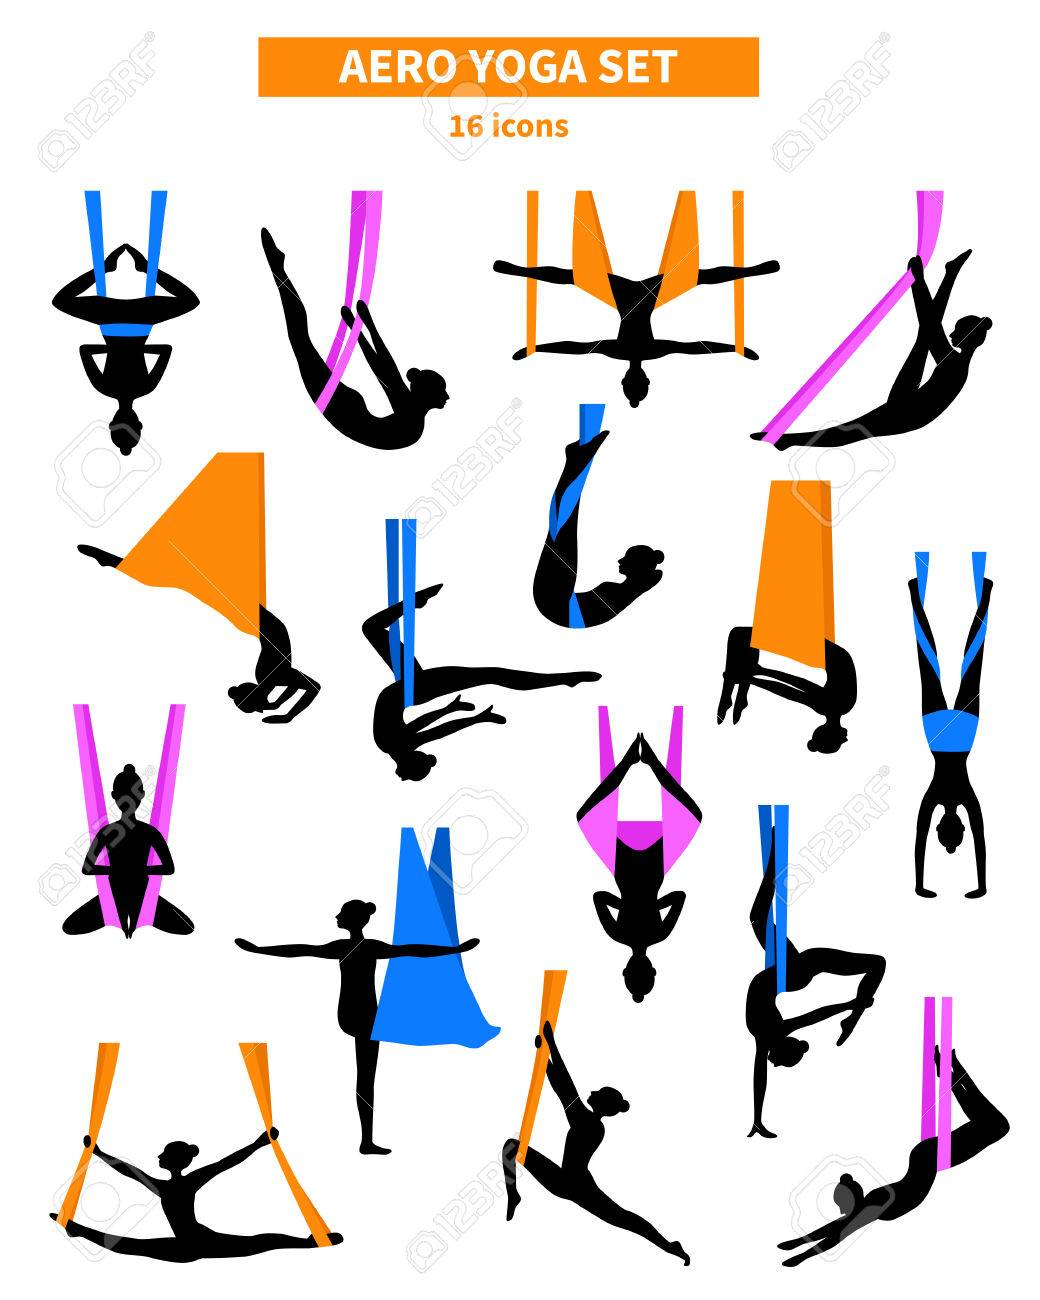 Aero Yoga Black White Isolated Icon Set With Silhouettes Of Women Training In Colored Fabrics Vector